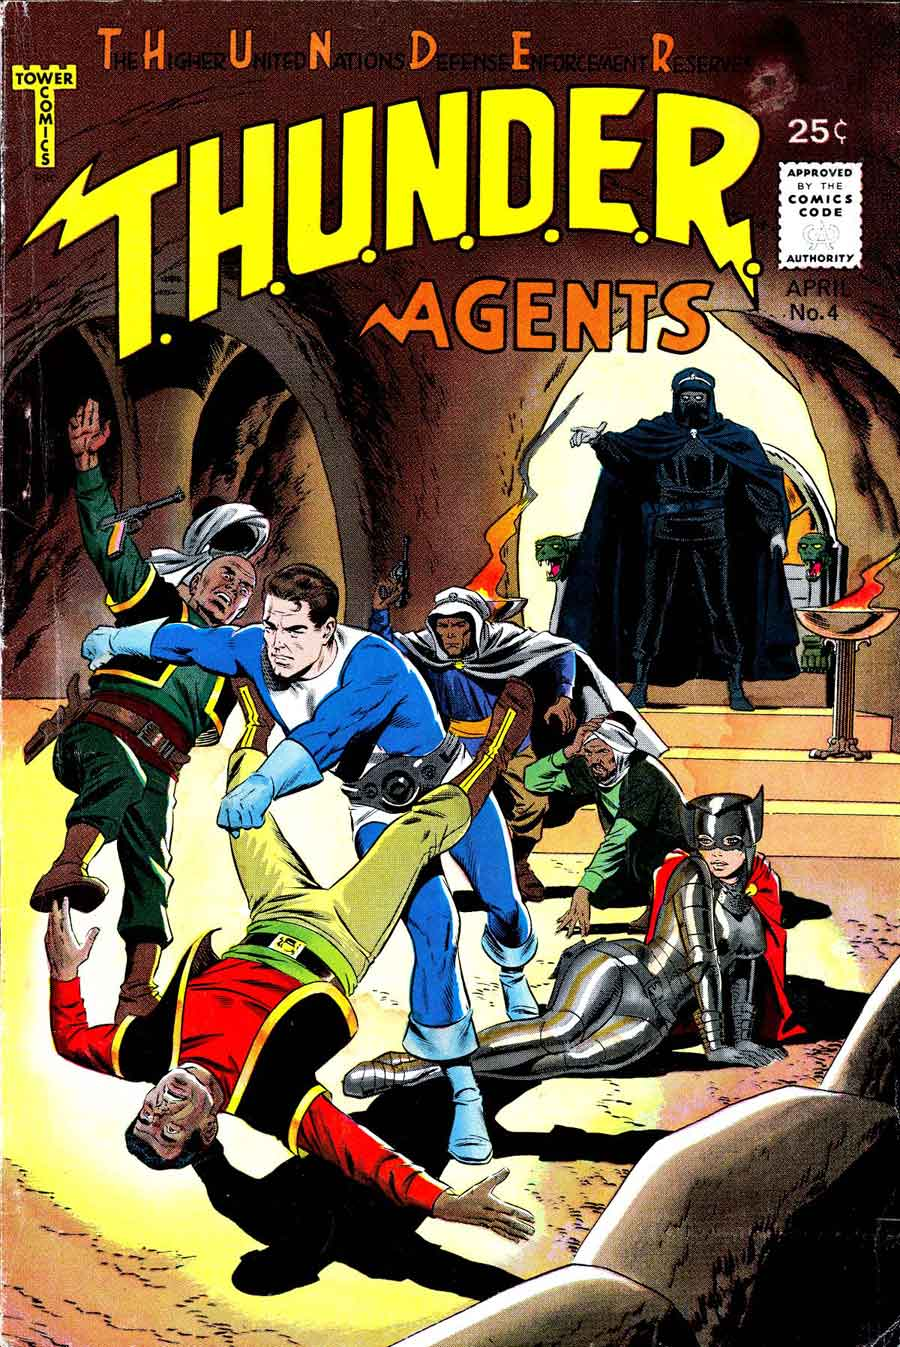 Thunder Agents v1 #4 tower silver age 1960s comic book cover art by Wally Wood